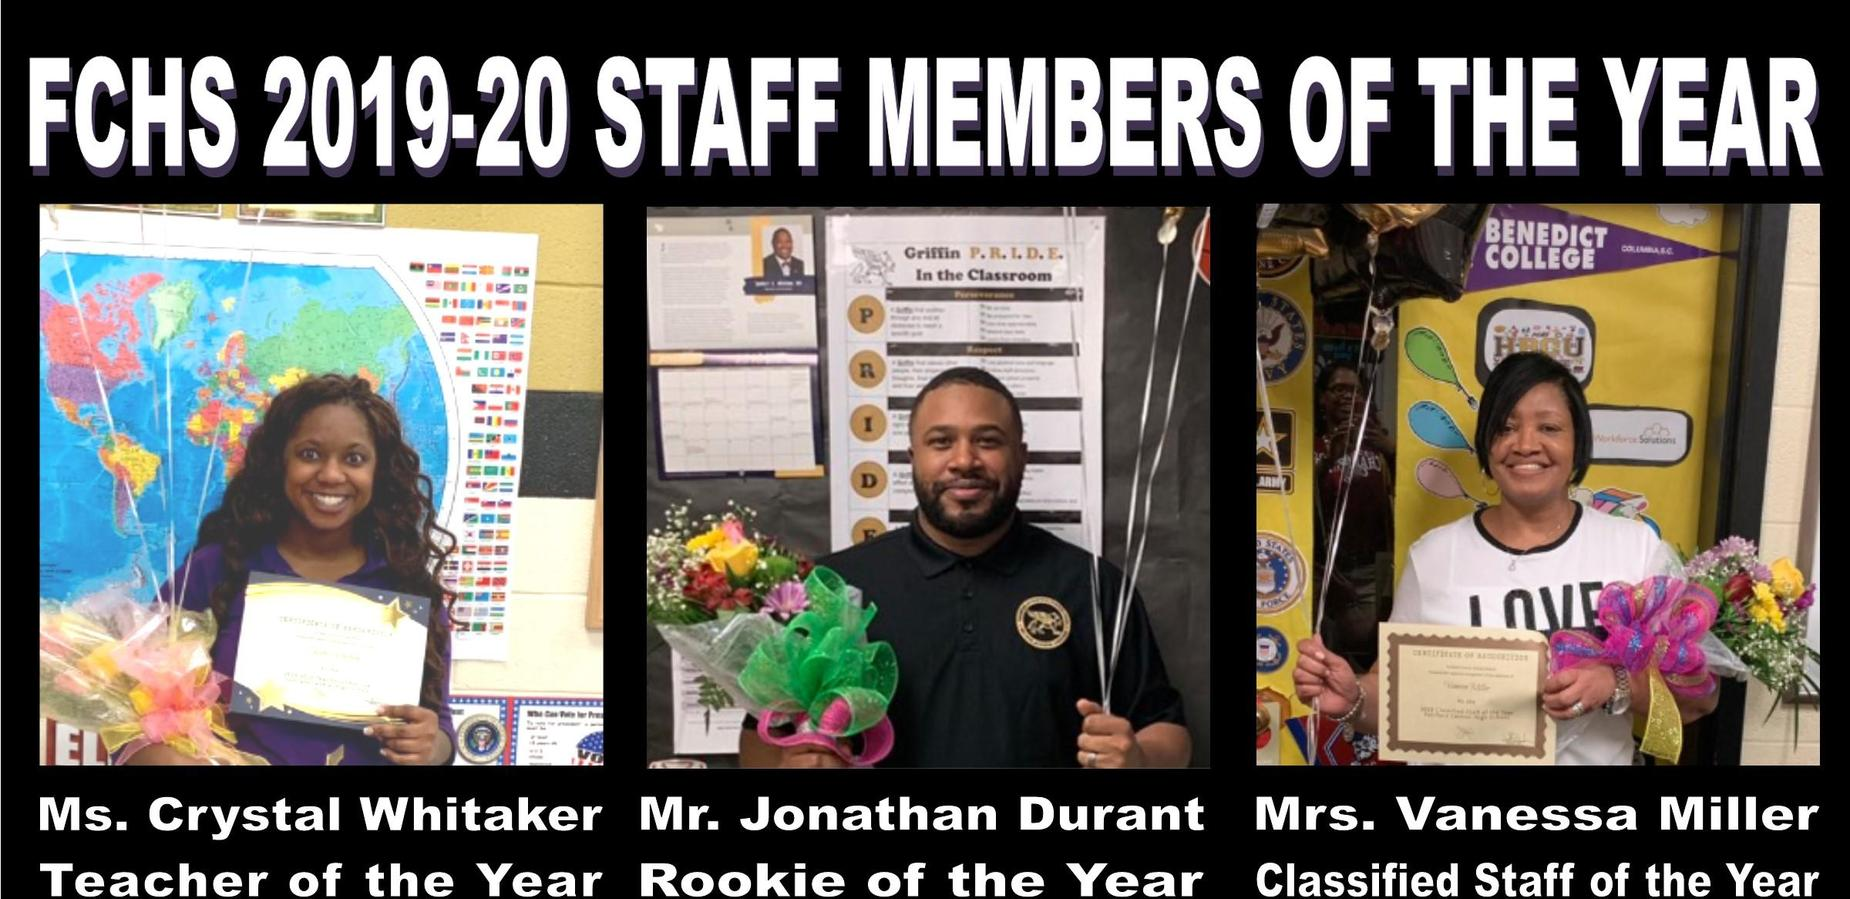 FCHS 2019-20 Crystal Whitaker [Teacher of the Year], Jonathan Durant [Rookie of the Year], Vanessa Miller [Classified Staff of the year]